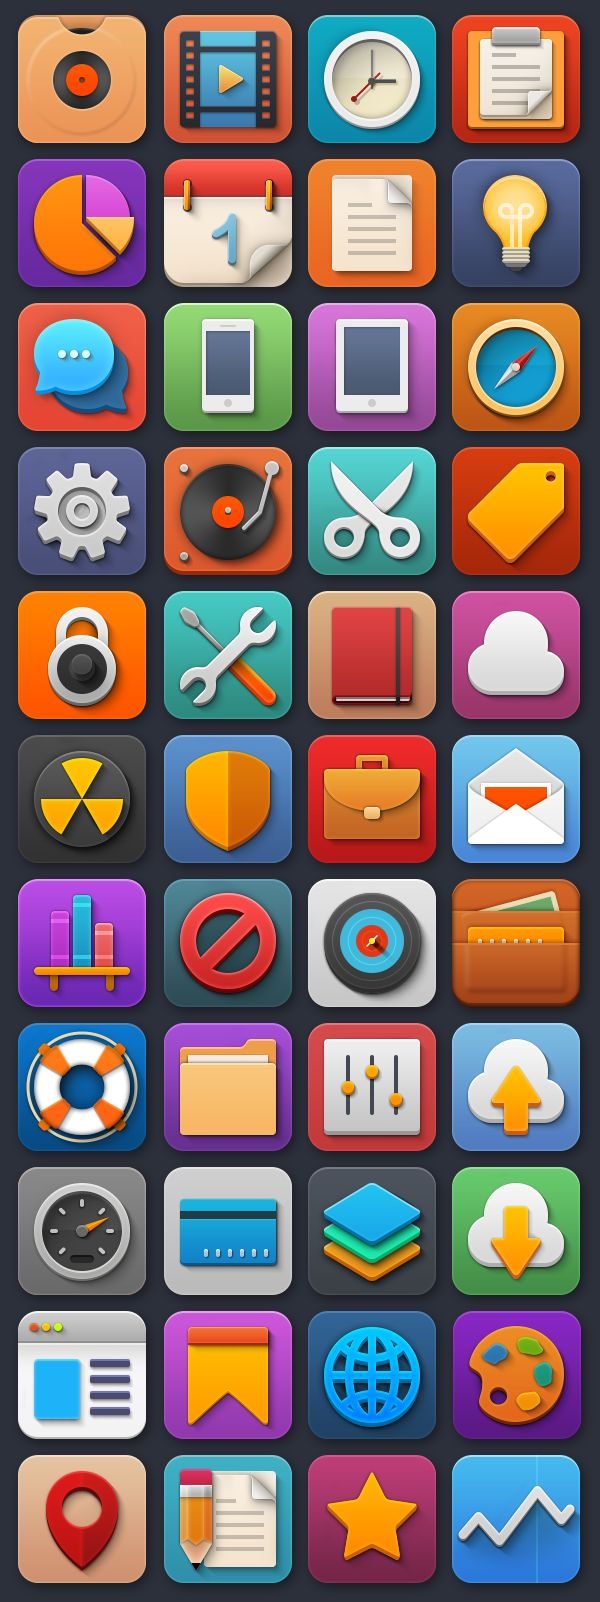 Softies: 44 Icon Set